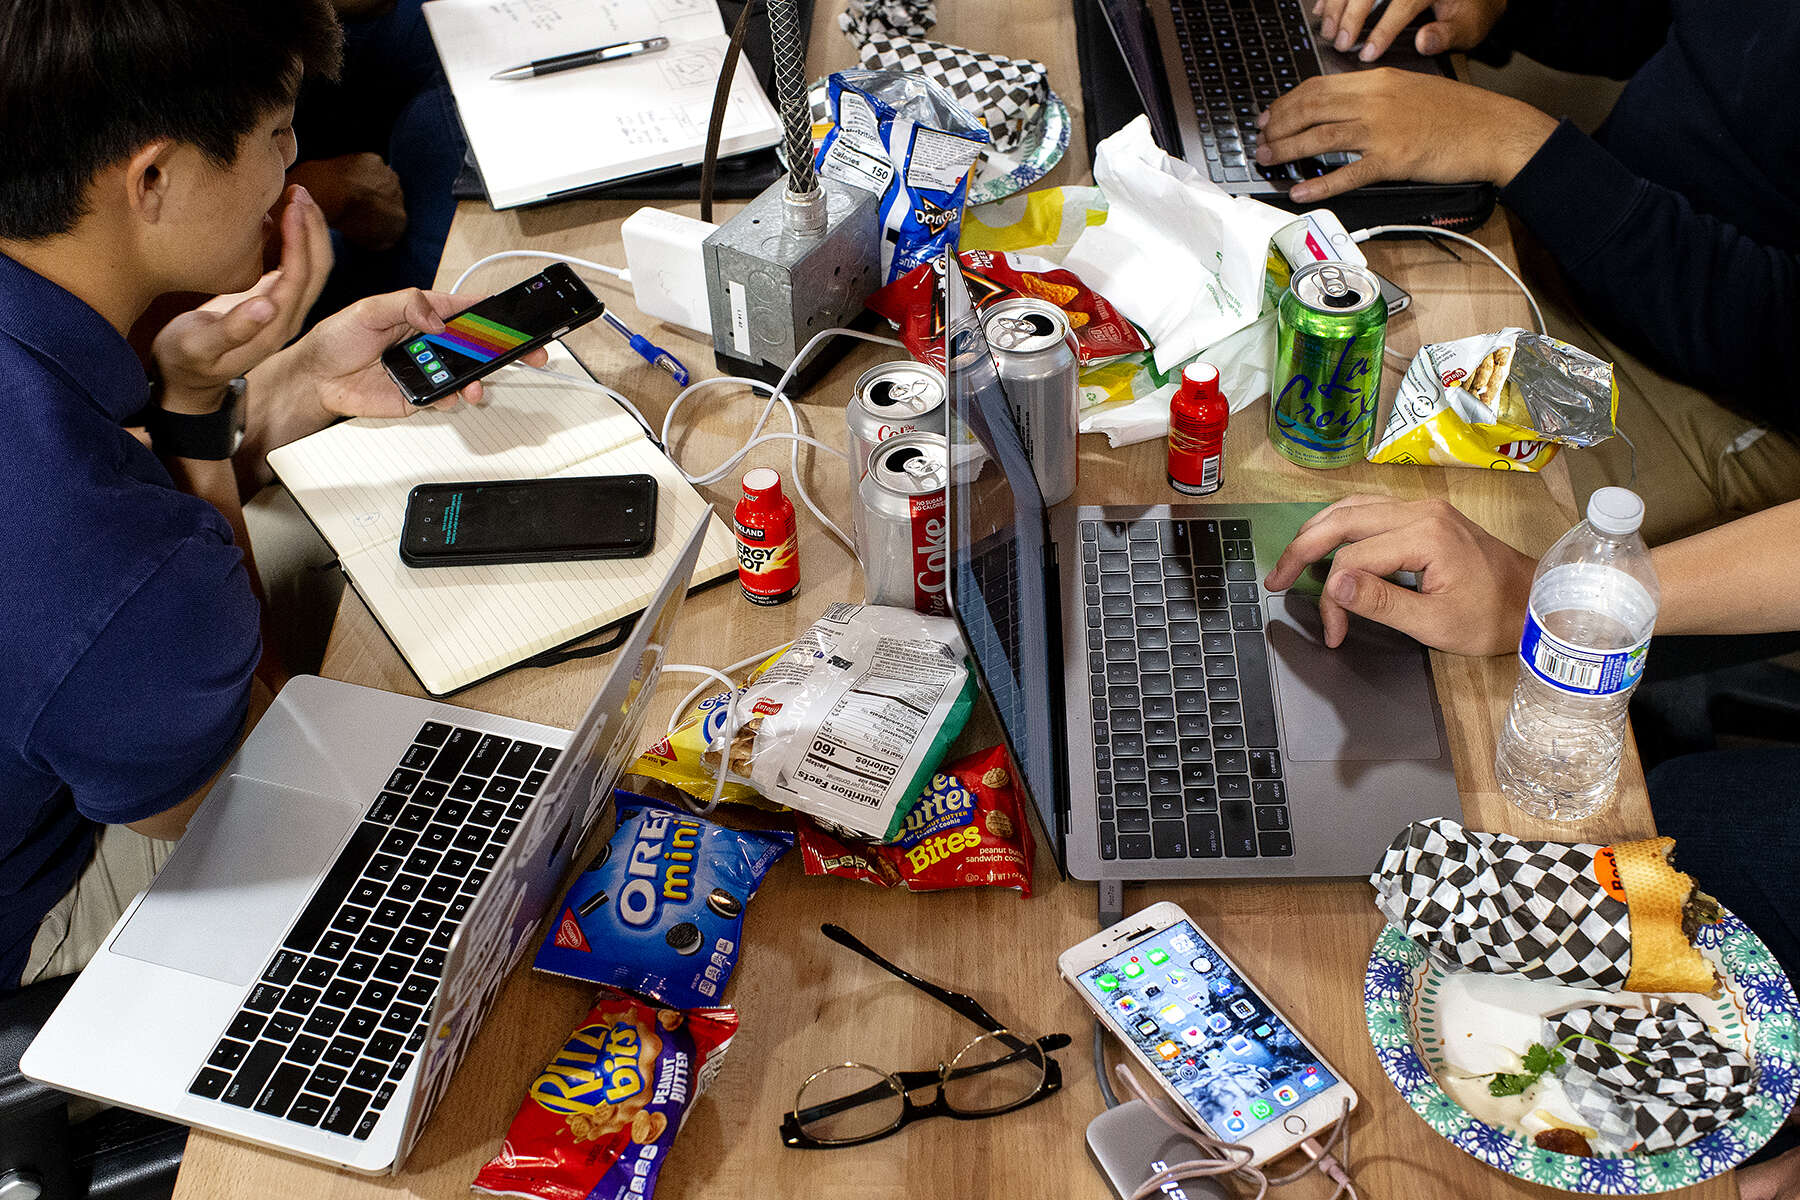 Fueled by snacks, energy drinks, and diet soda, students from Singapore's Nanyang Technological University develop ideas for an augmented reality app during a hackathon in Santa Clara, Calif., on July 27, 2018. Hackathons, an important part of the tech industry eco-system, are events where software developers and other individuals involved in technology development come together to collaborate on teams and create something in a set period of time, often competing for prizes.